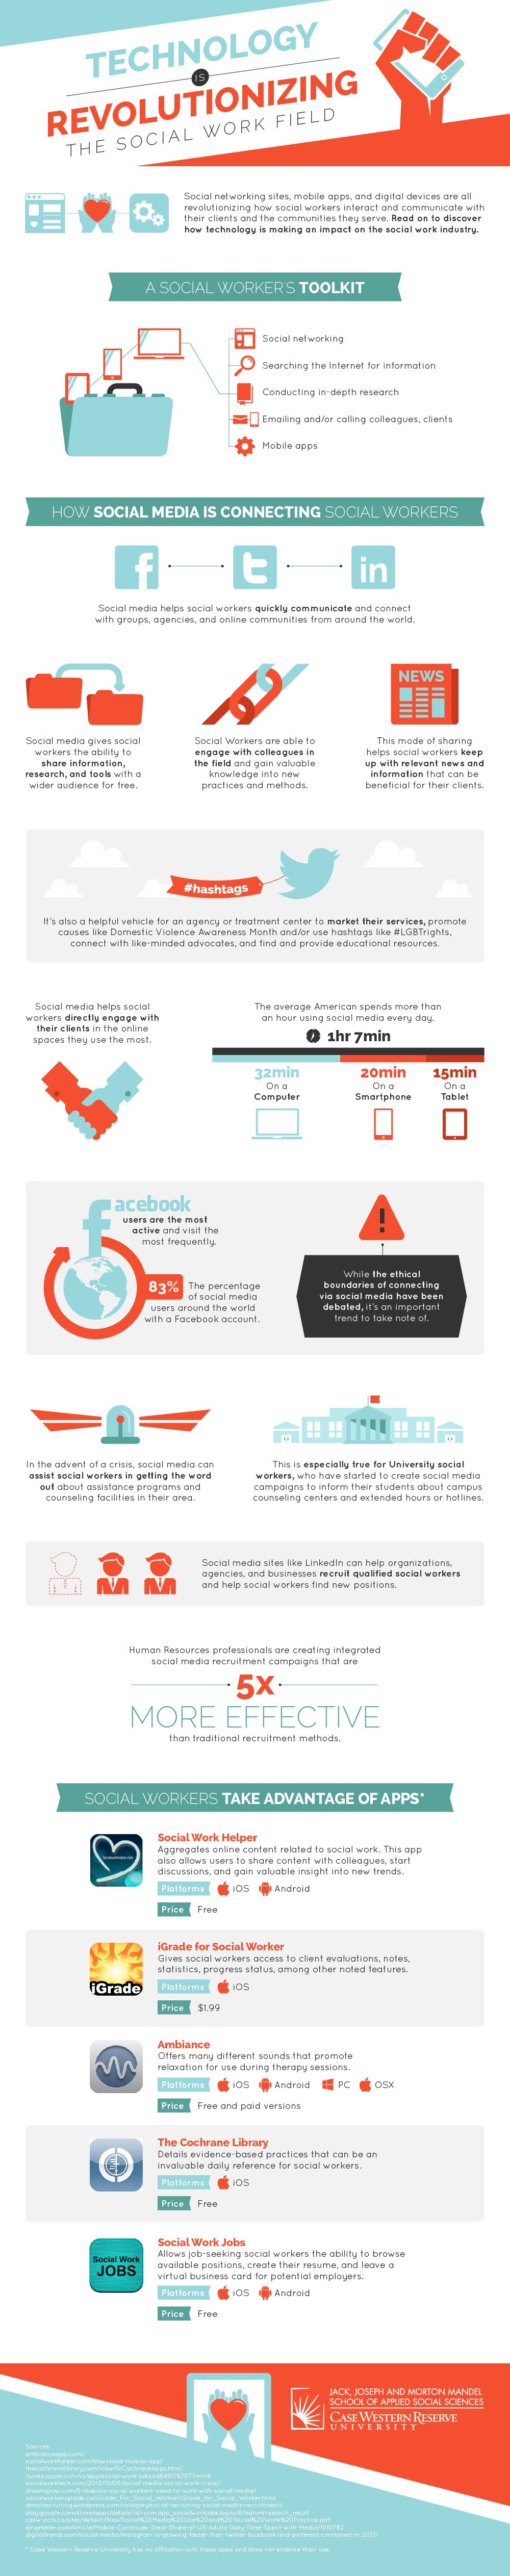 Infographic: Technology is Revolutionizing the Social Work Field